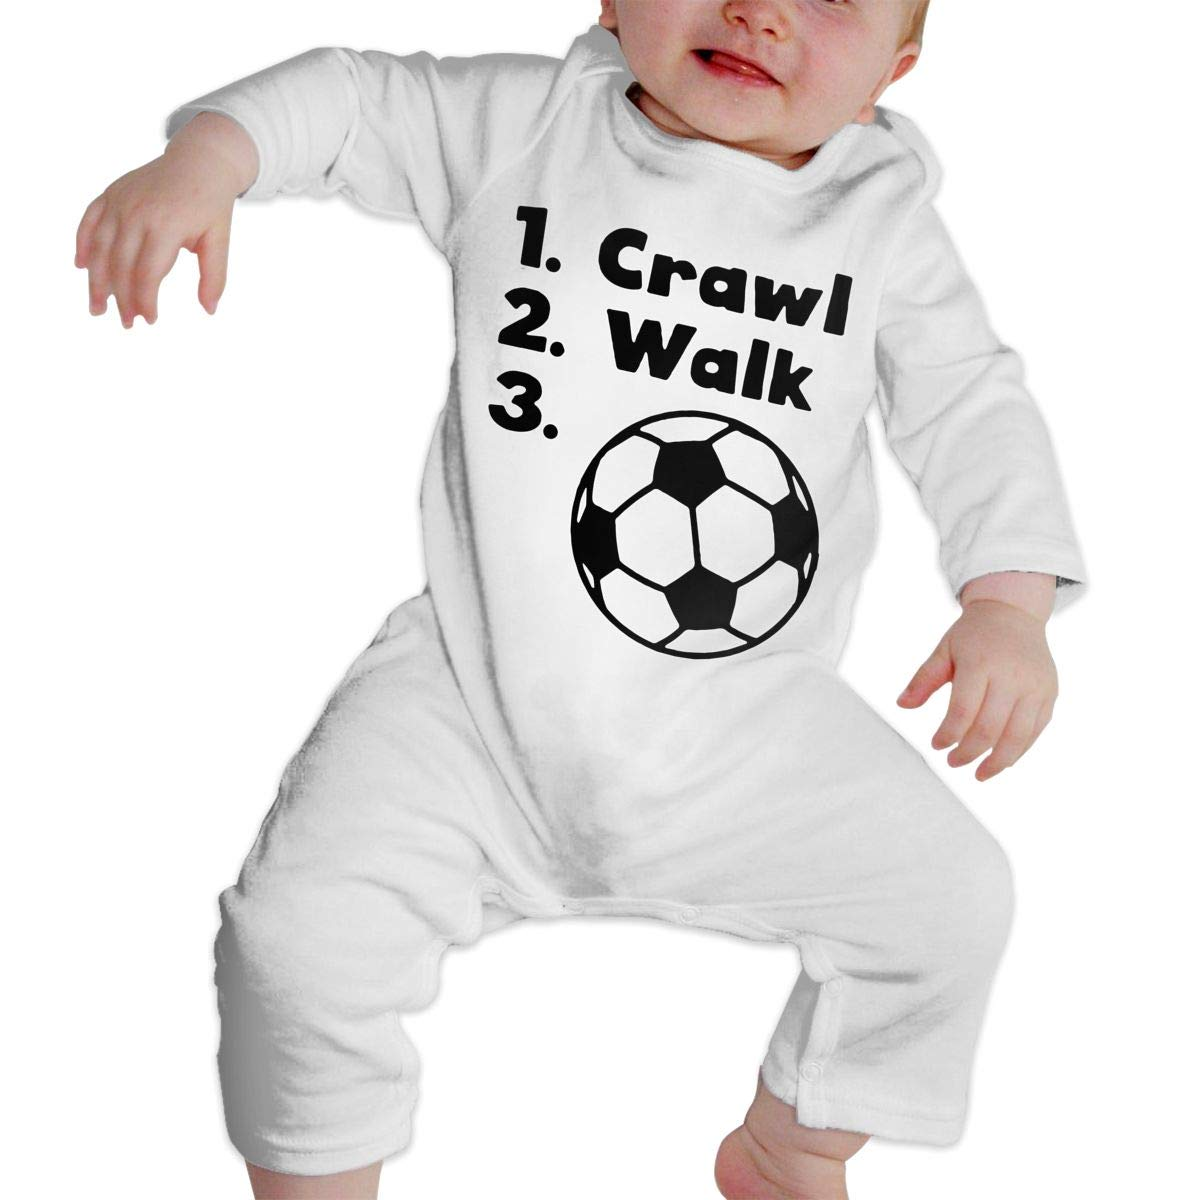 A1BY-5US Infant Baby Boys Girls Cotton Long Sleeve Crawl Walk Soccer Climb Romper One-Piece Romper Clothes